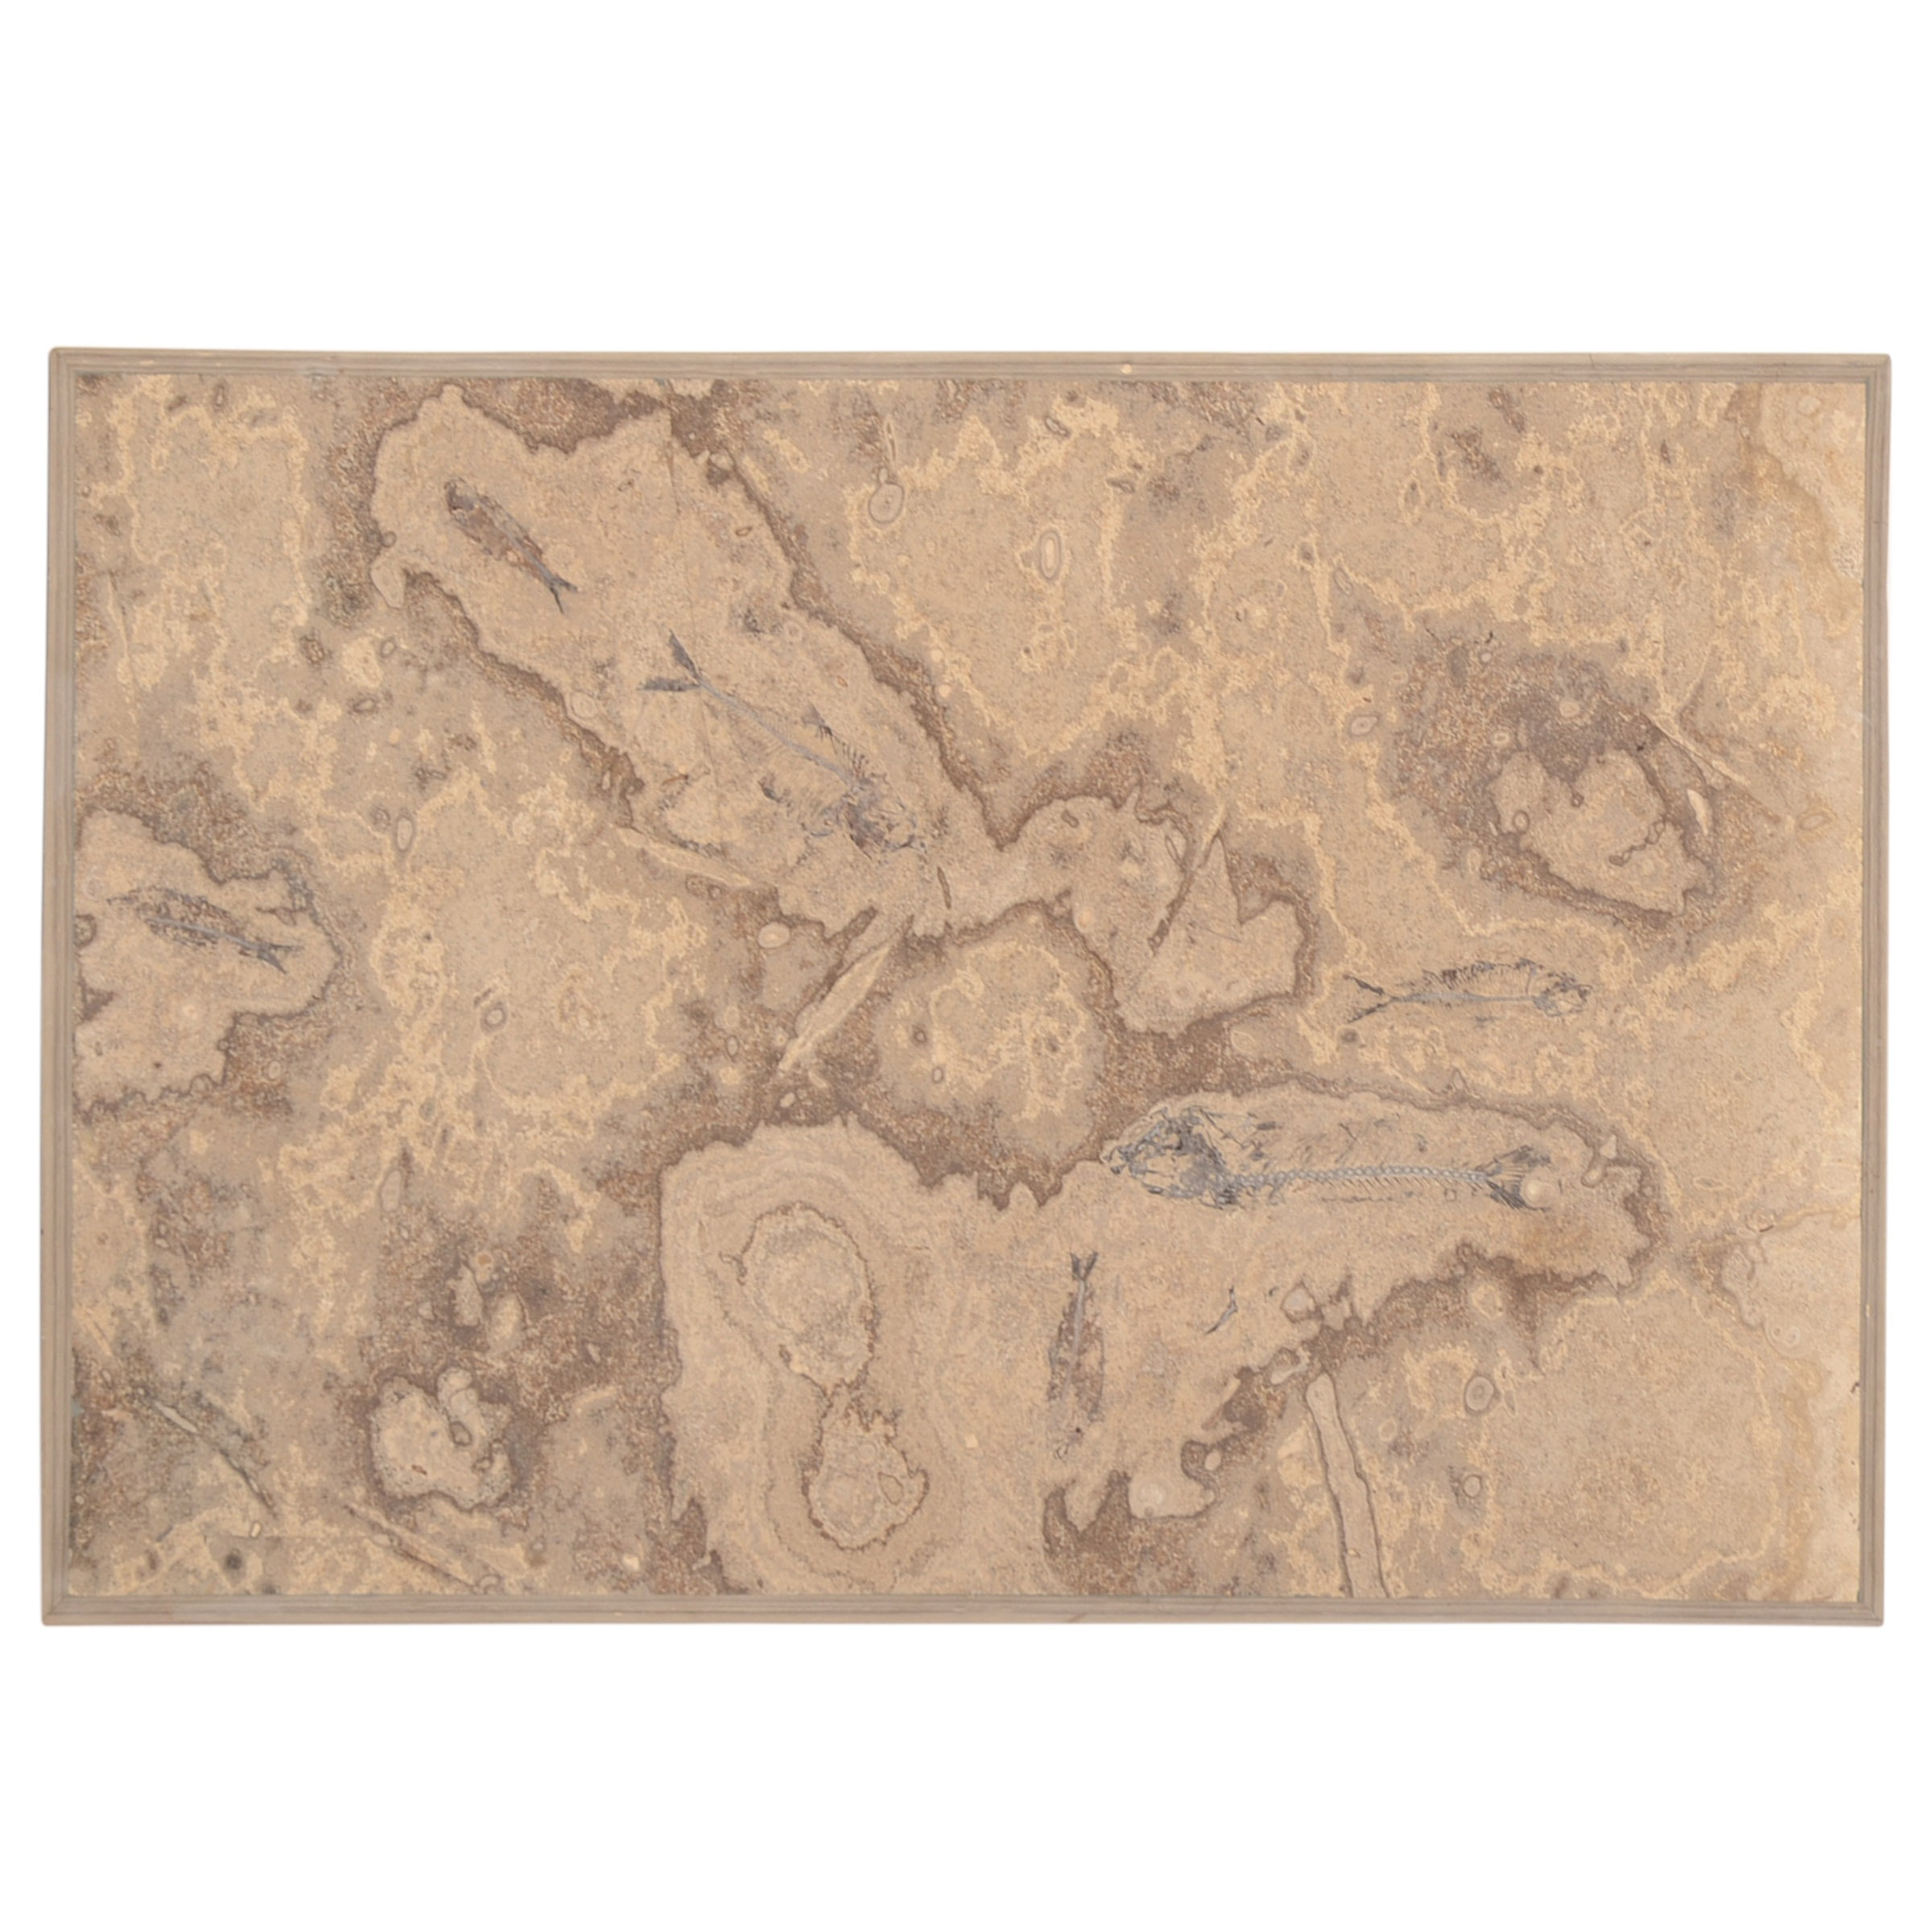 Simulated Fossilized Fish Wall Decor